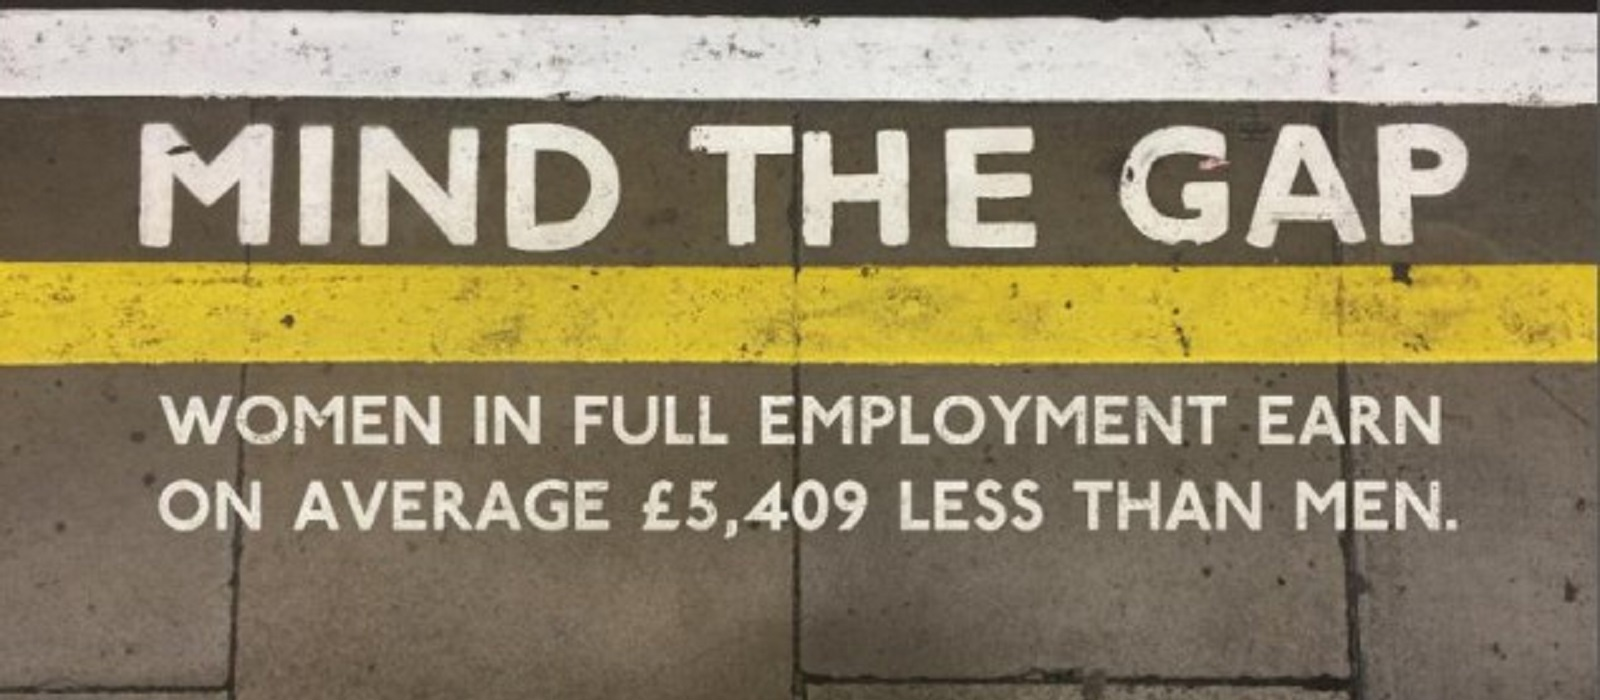 Mind the gap written on train platform